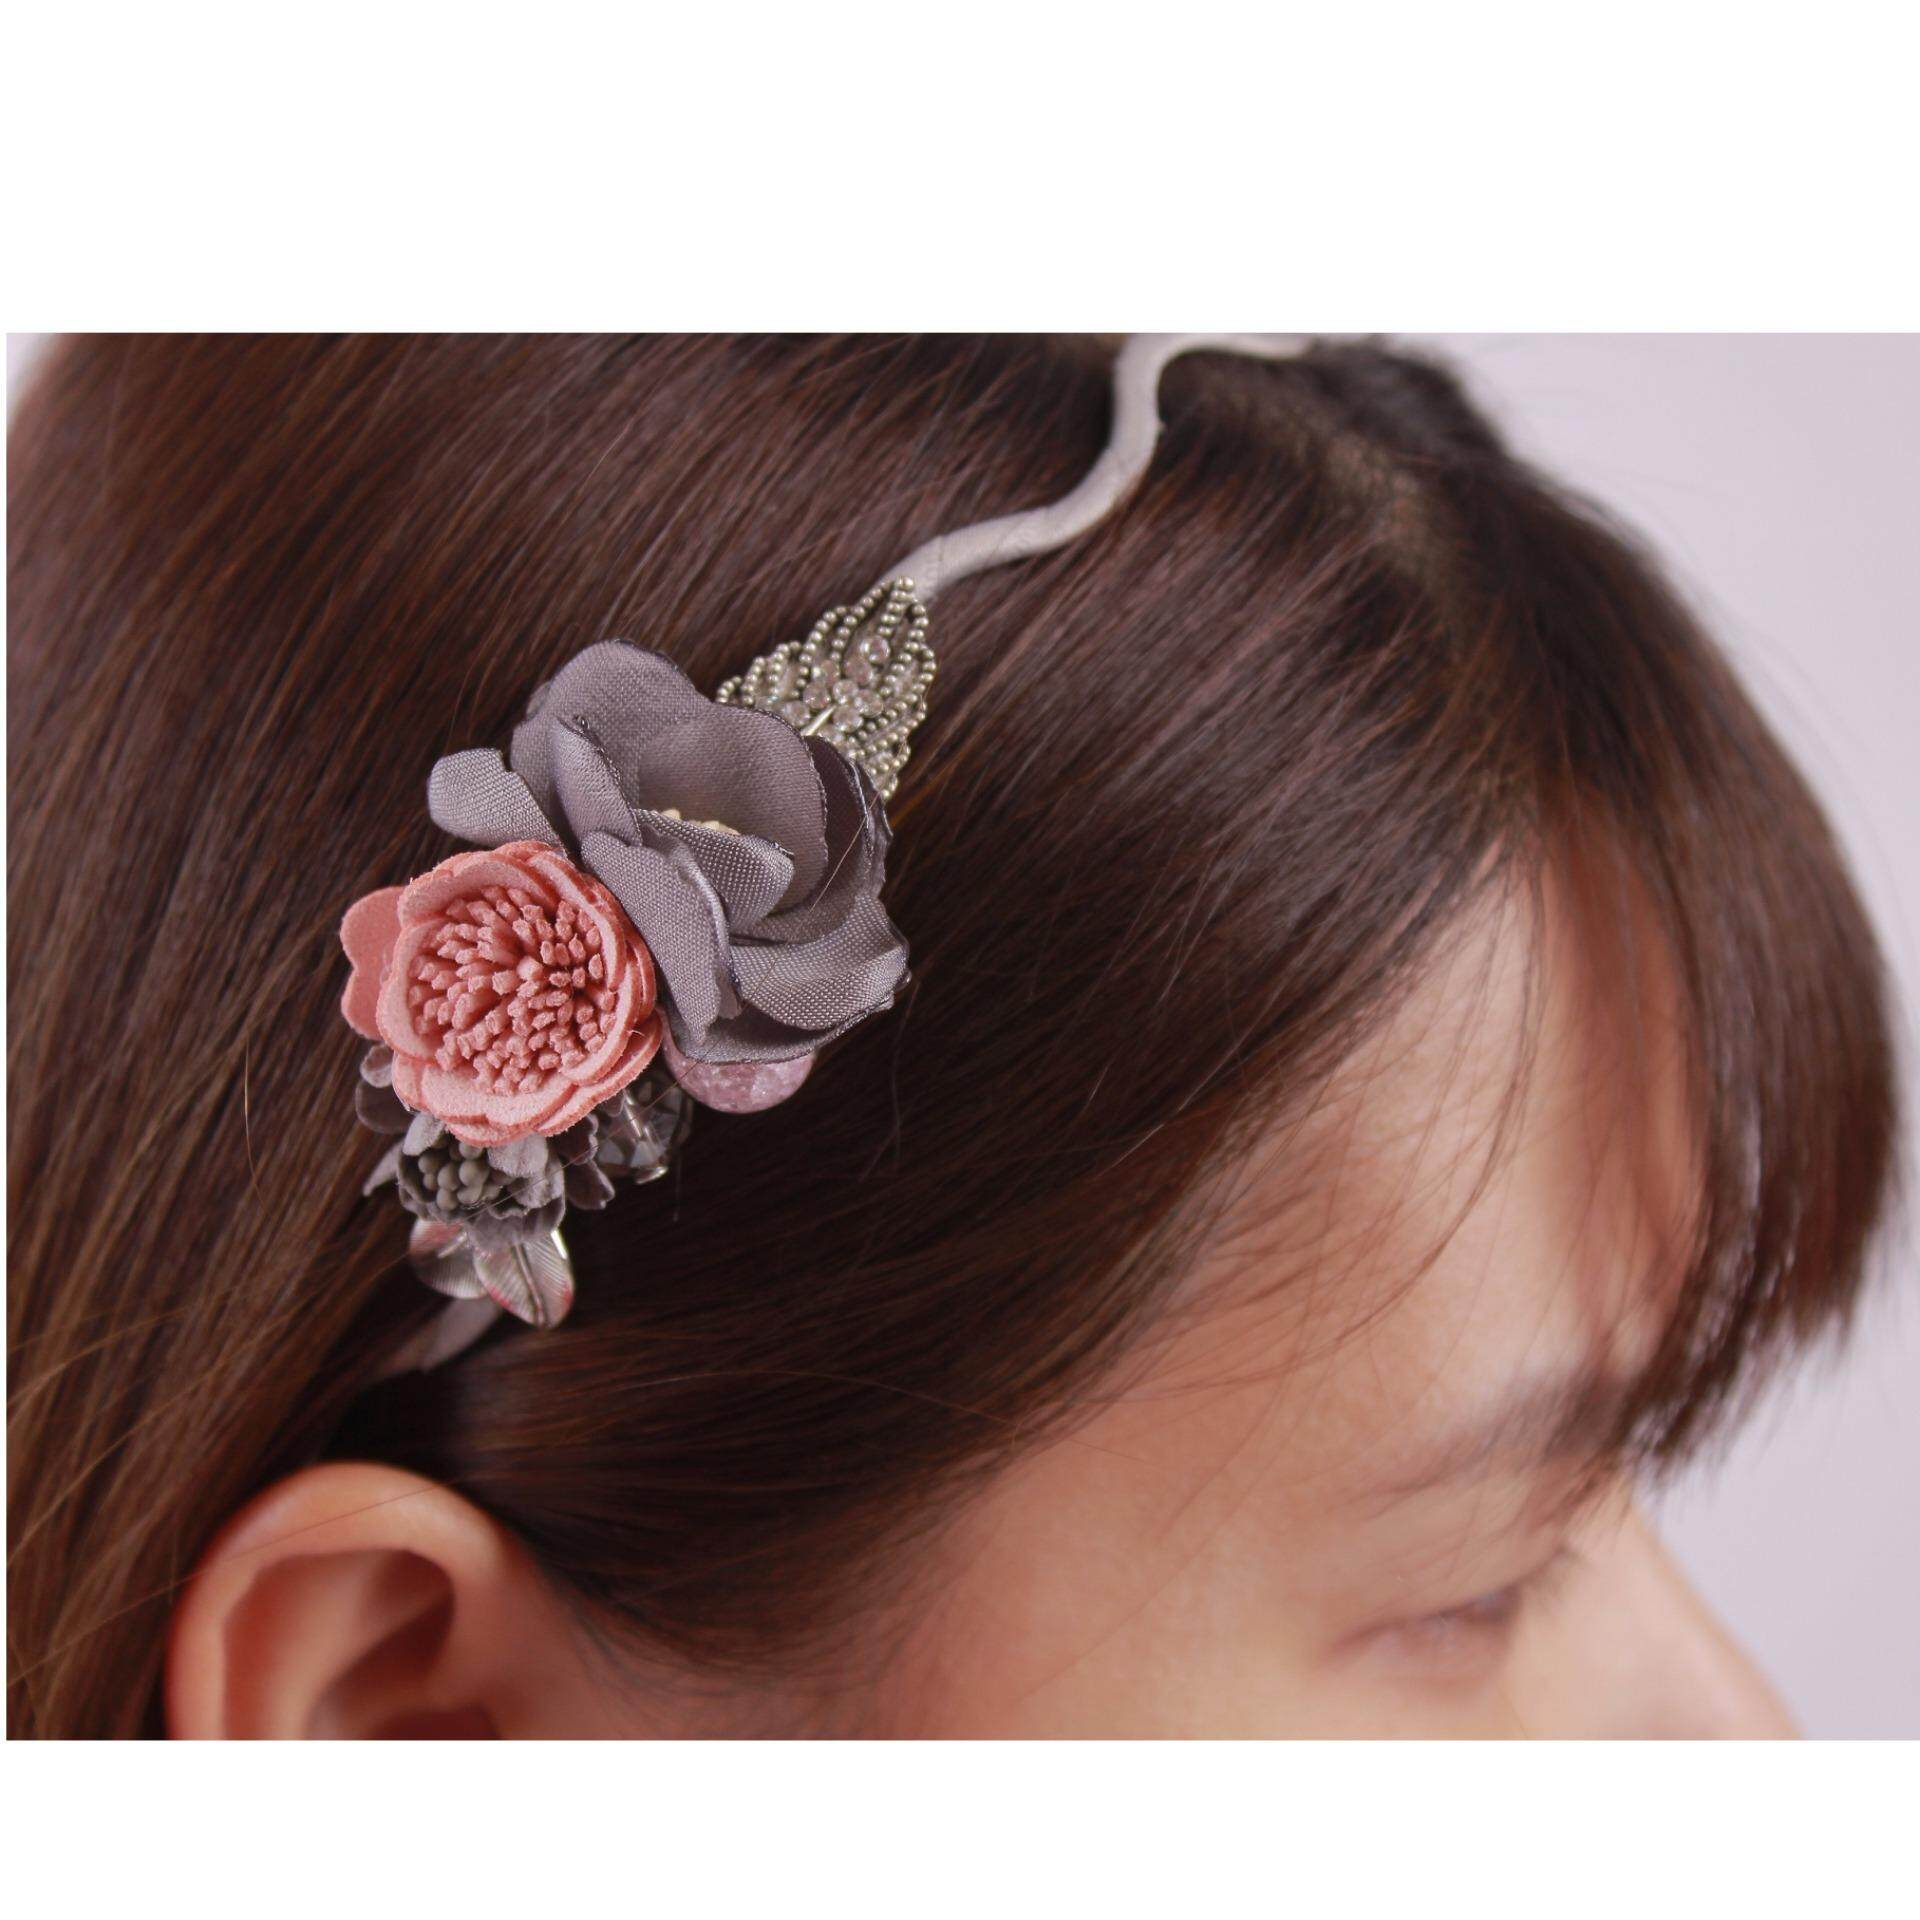 AFGY 0510 FGA 205 G Vintage Inspired Floral Hairband (Grey)